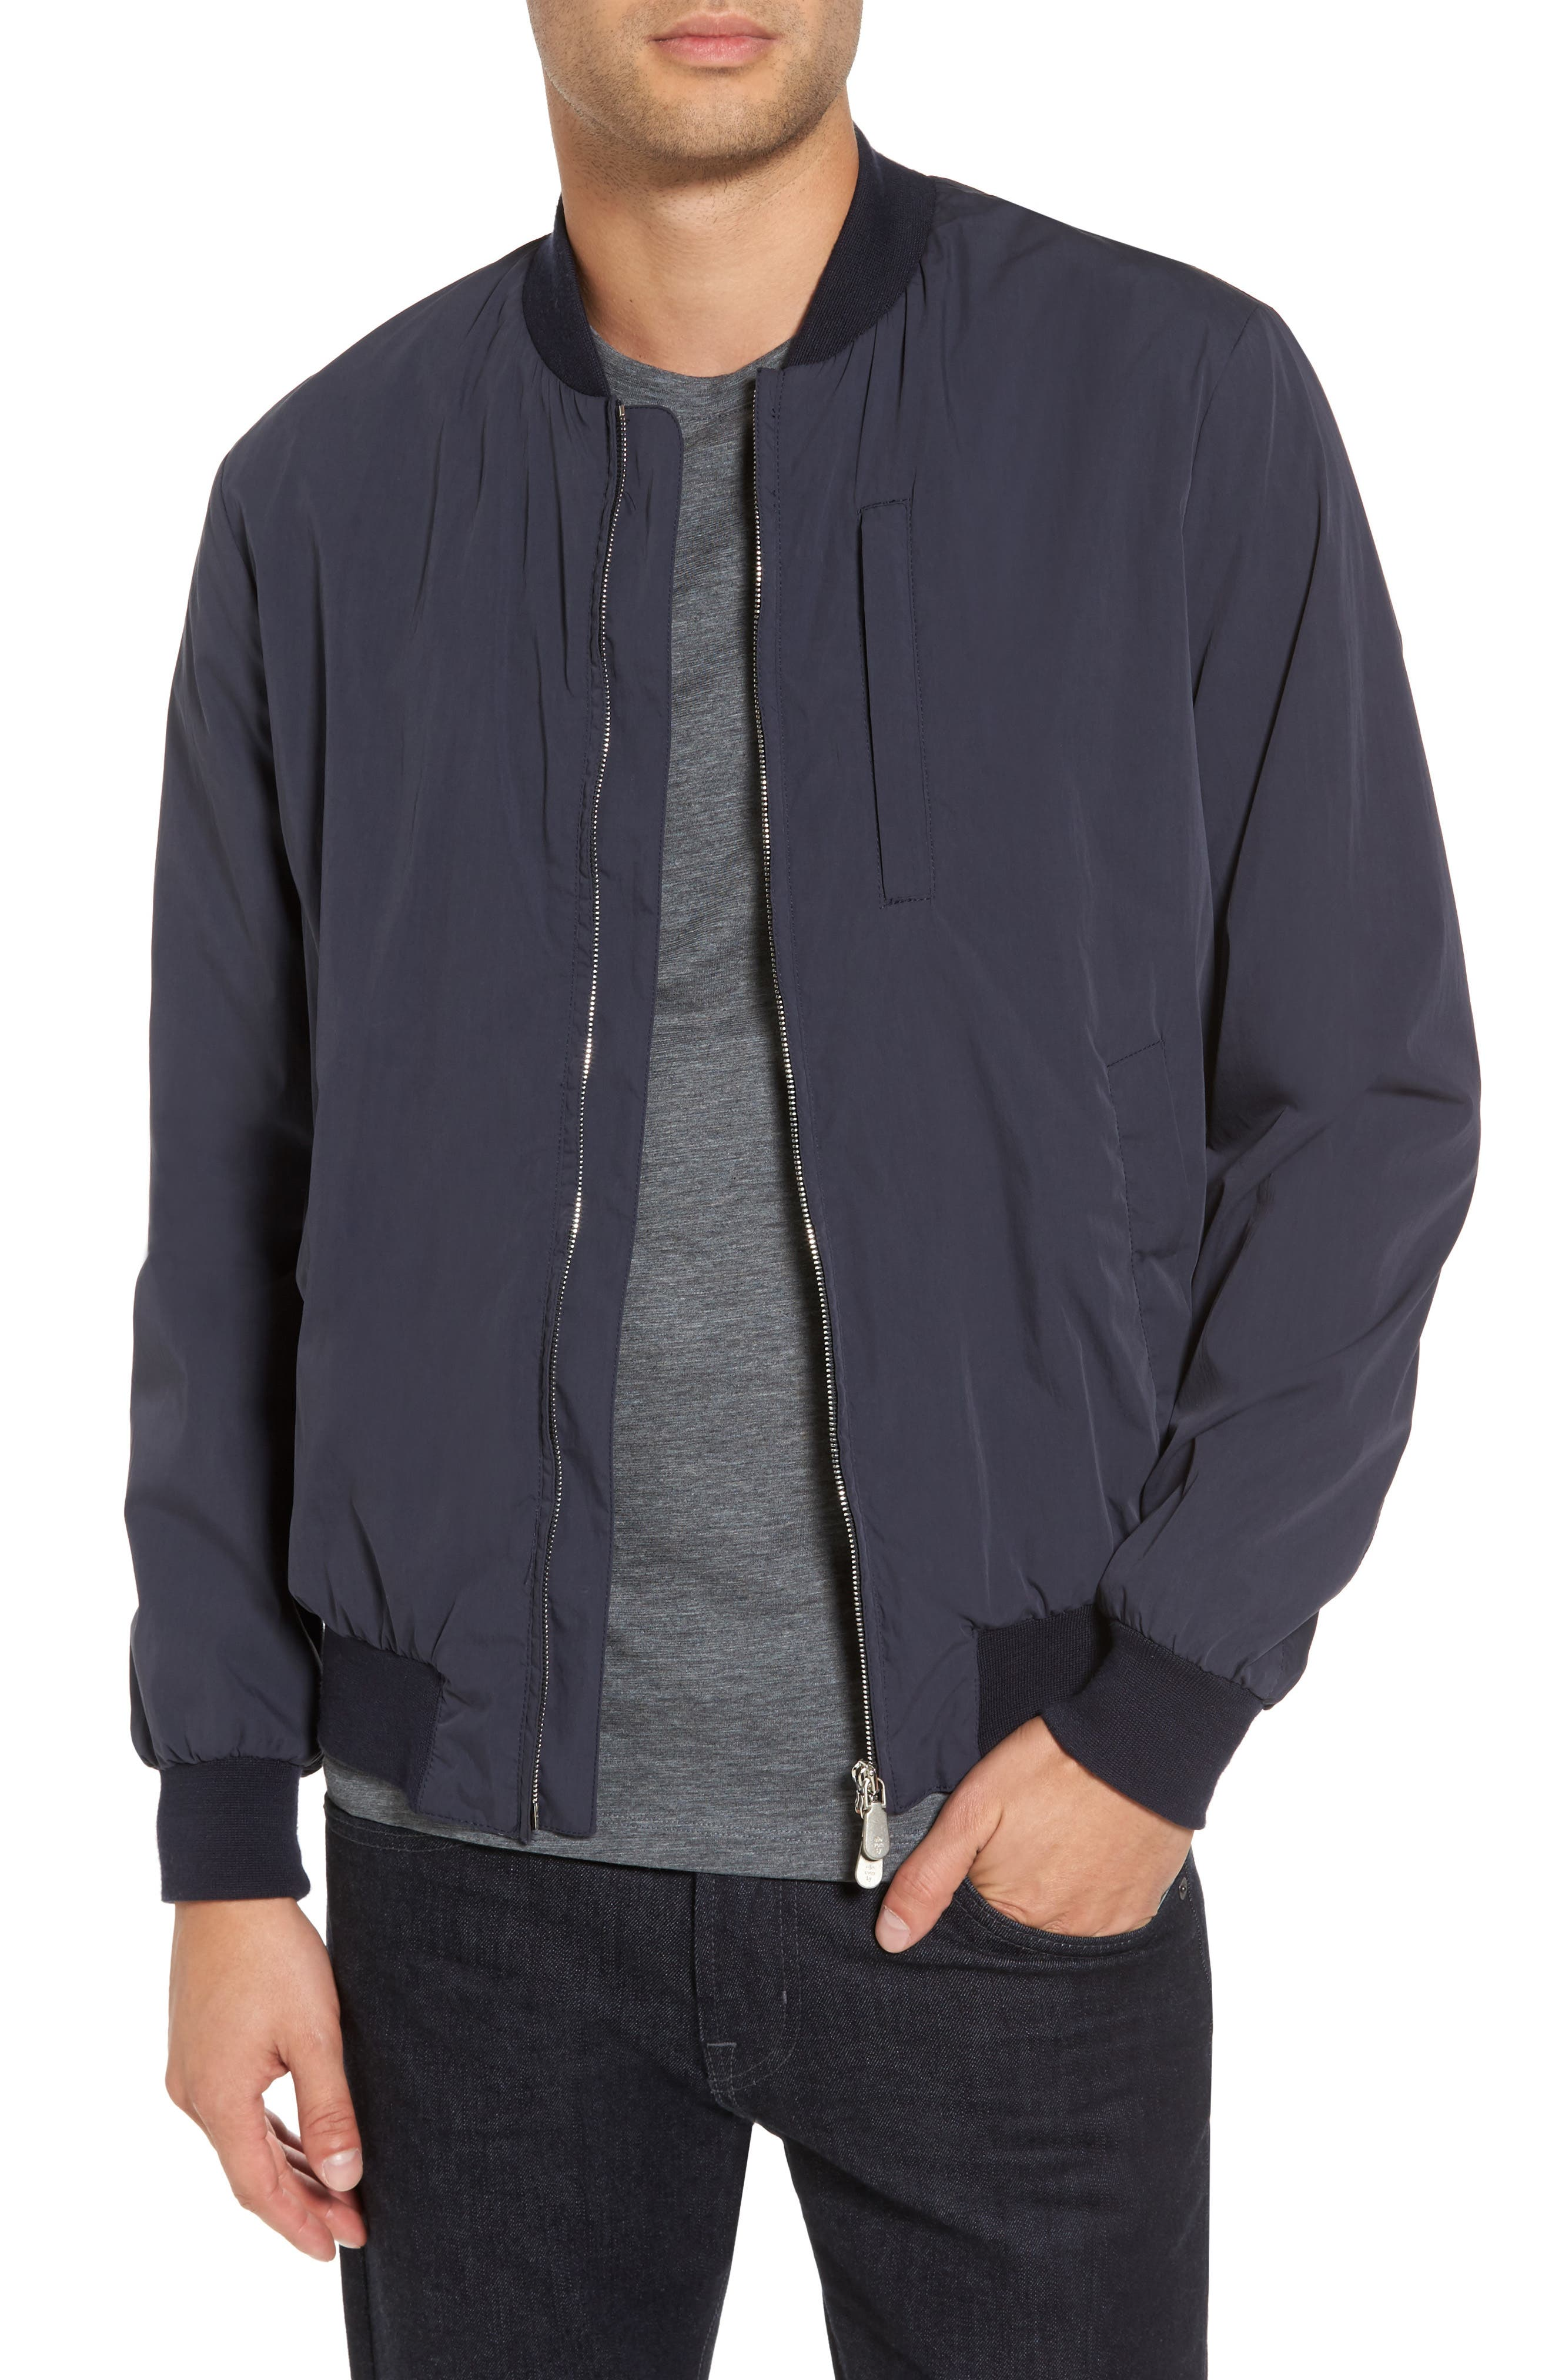 Cotton Blend Bomber Jacket,                             Main thumbnail 1, color,                             NAVY